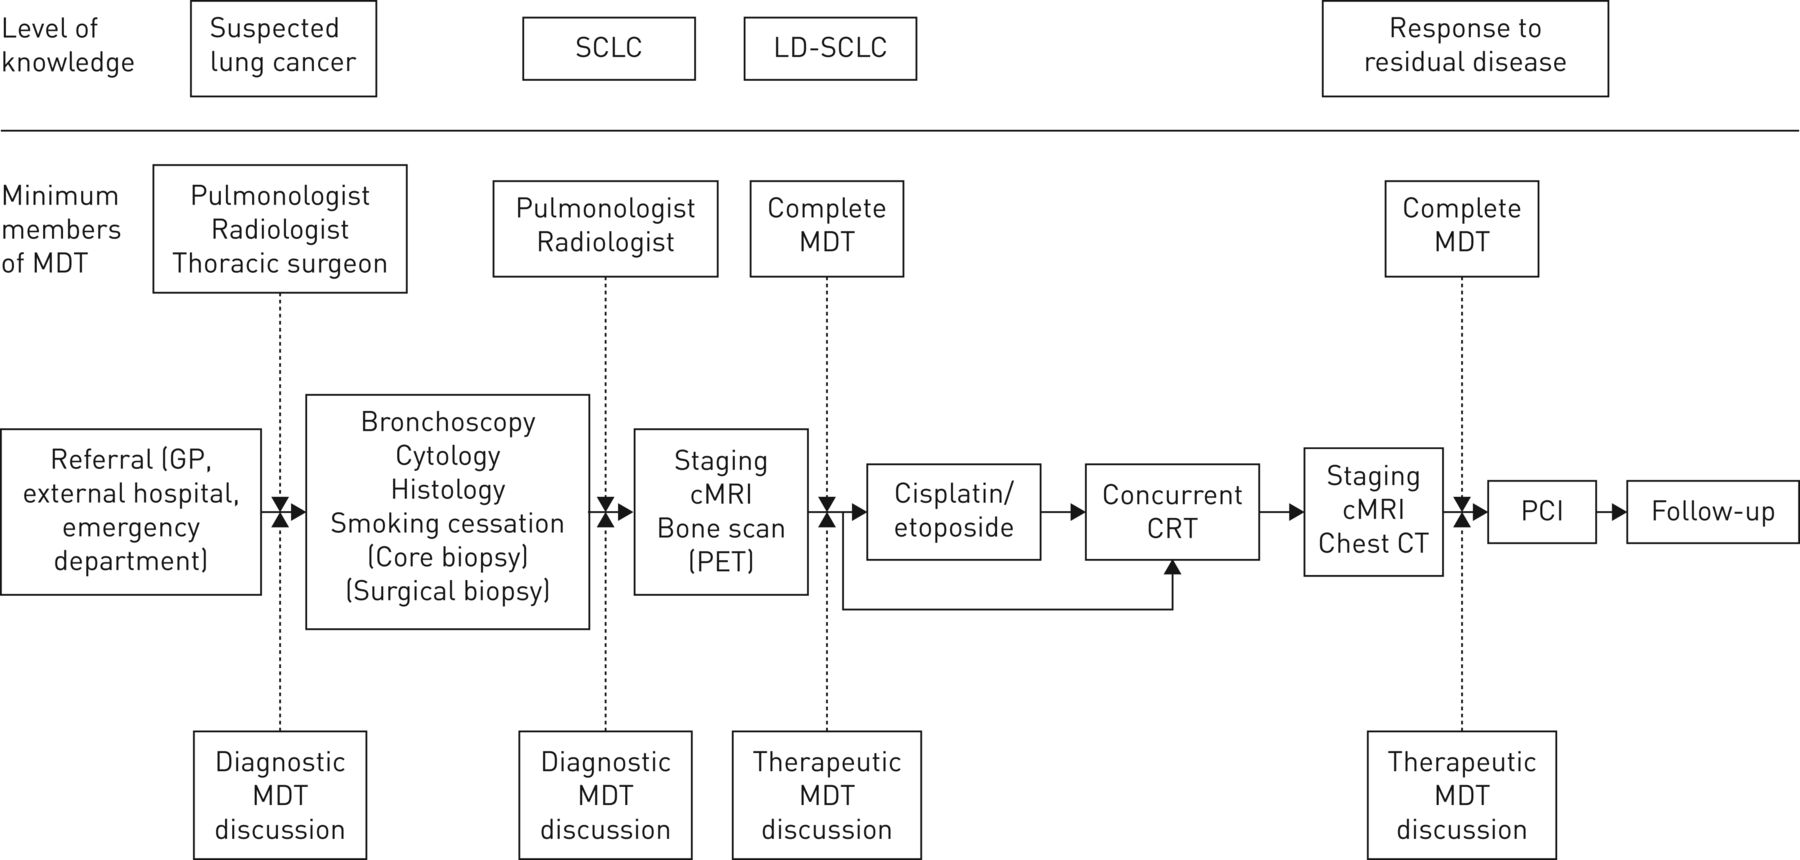 Treatment of limited disease small cell lung cancer: the